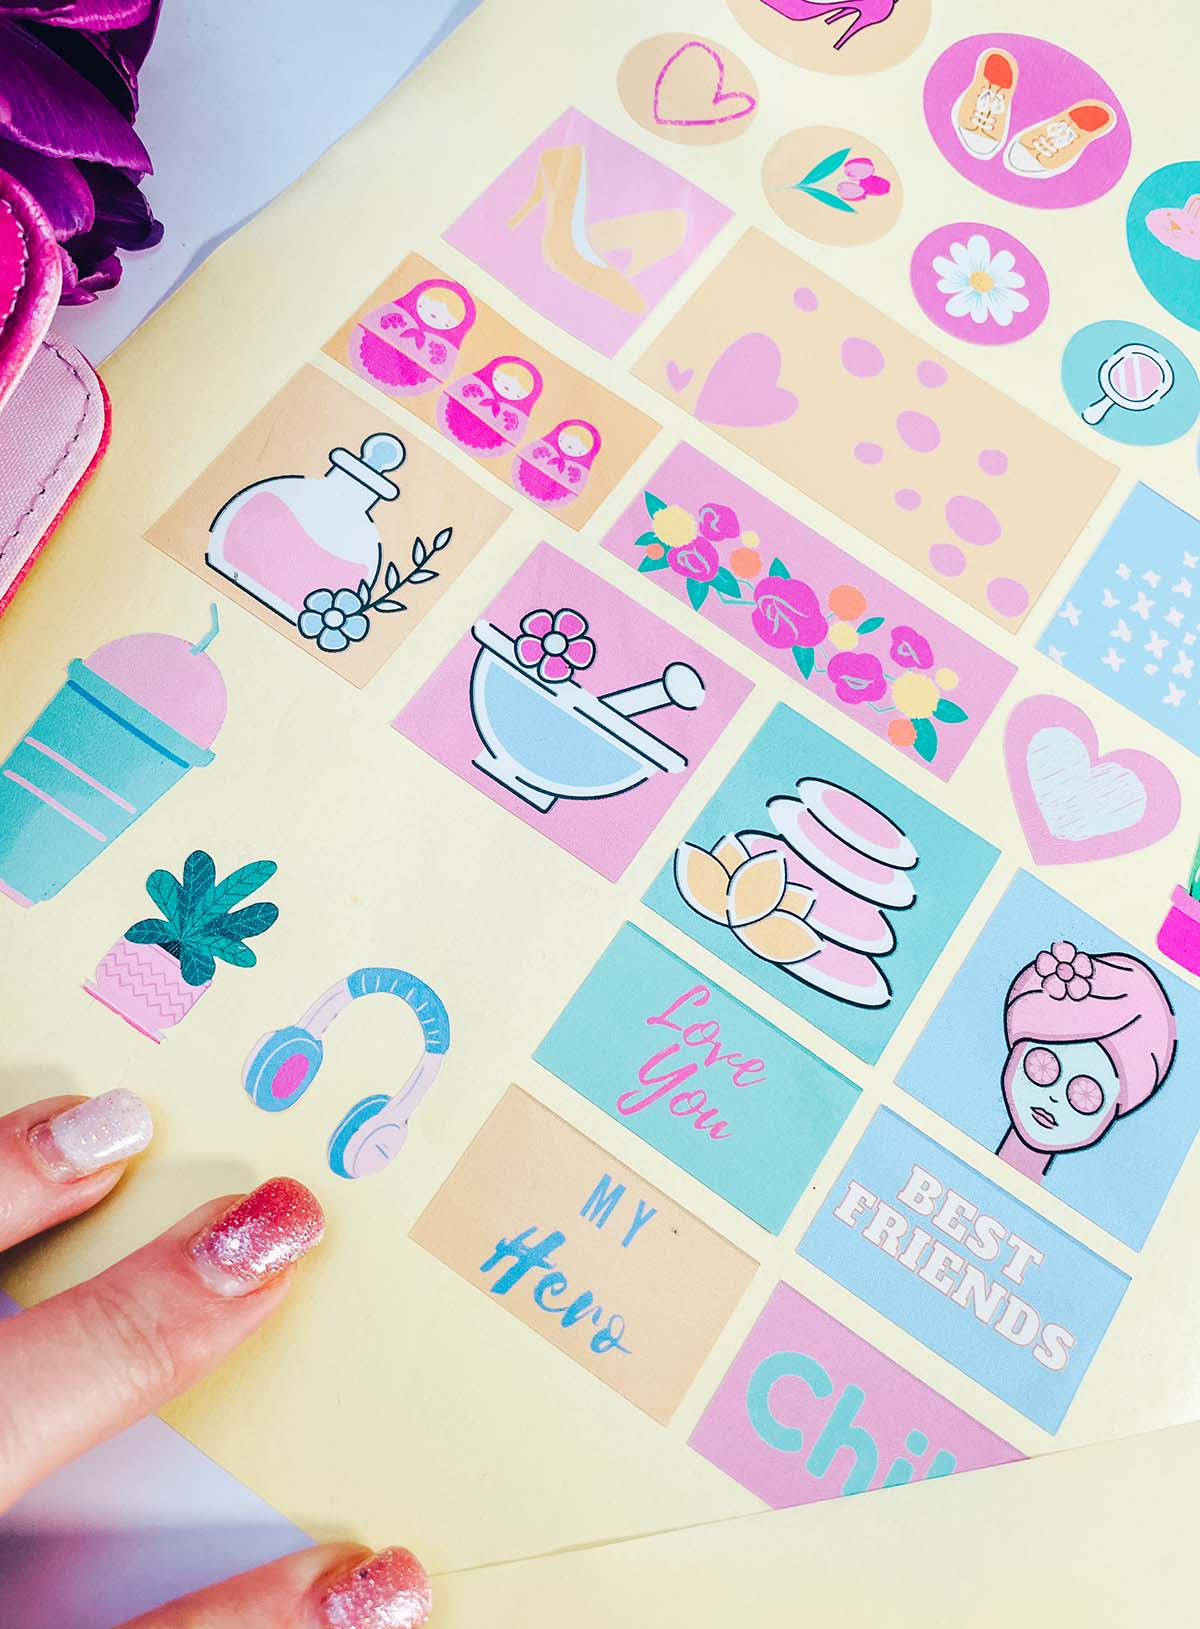 Mothers Day Scrapbooking ideas